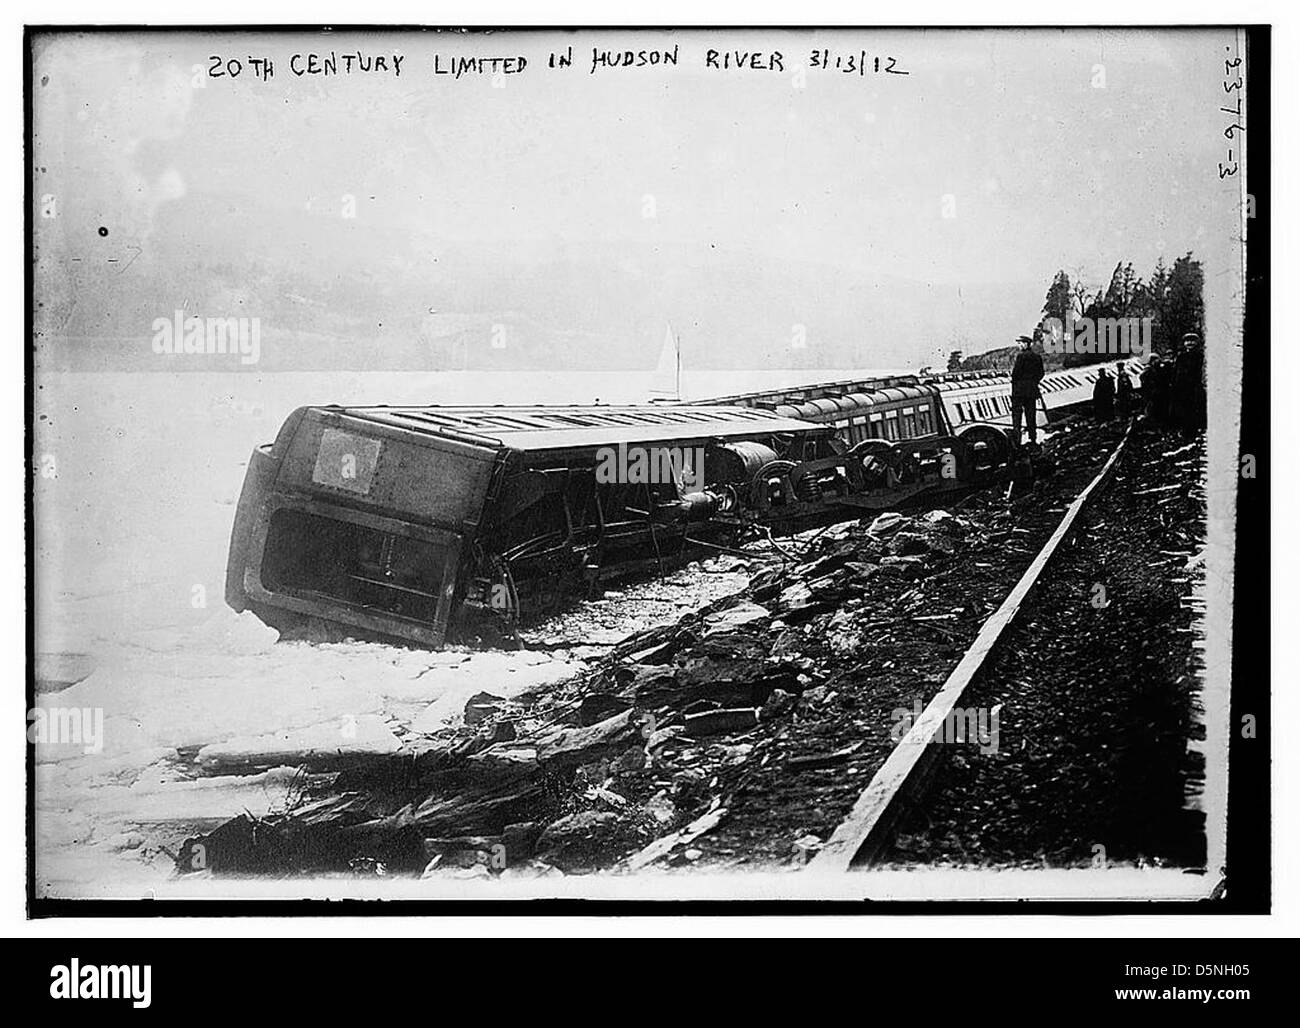 '20th Century' limited in Hudson River (LOC) - Stock Image